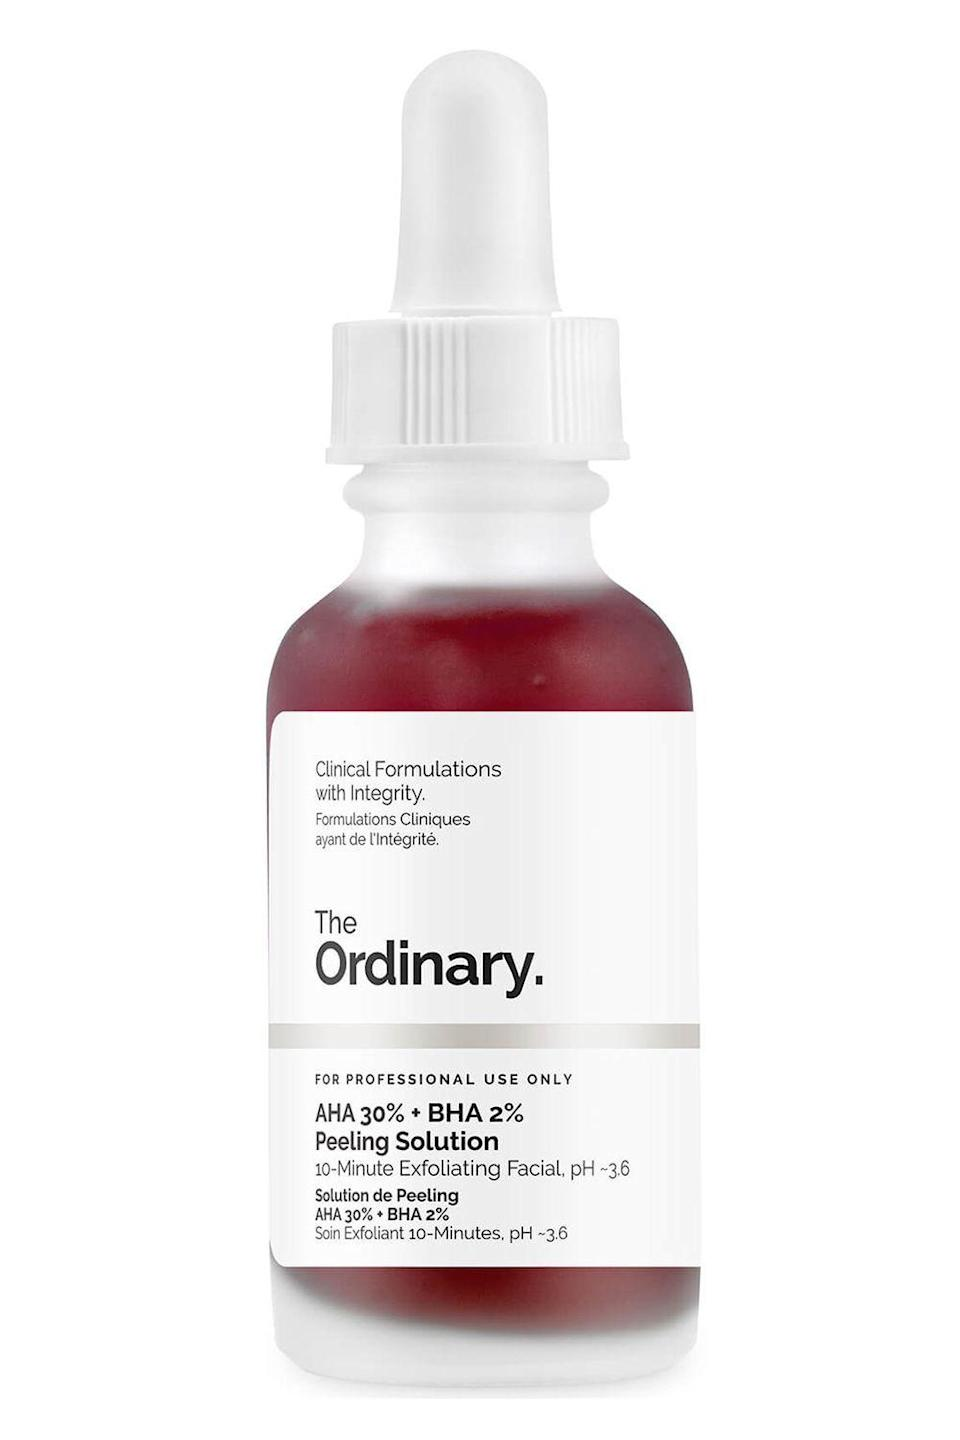 """<p><strong>The Ordinary</strong></p><p>sephora.com</p><p><strong>$7.20</strong></p><p><a href=""""https://go.redirectingat.com?id=74968X1596630&url=https%3A%2F%2Fwww.sephora.com%2Fproduct%2Faha-30-bha-2-peeling-solution-P442563&sref=https%3A%2F%2Fwww.cosmopolitan.com%2Fstyle-beauty%2Fbeauty%2Fg30554130%2Fbest-at-home-face-peel%2F"""" rel=""""nofollow noopener"""" target=""""_blank"""" data-ylk=""""slk:Shop Now"""" class=""""link rapid-noclick-resp"""">Shop Now</a></p><p>Get a pro-quality face peel for a drugstore price (umm, it's only $7.20!!!) with this top-rated pick from The Ordinary. The peeling solution uses 30 percent AHAs and 2 percent BHAs to <strong><a href=""""https://www.cosmopolitan.com/style-beauty/beauty/news/a36360/ways-to-make-your-pores-smaller/"""" rel=""""nofollow noopener"""" target=""""_blank"""" data-ylk=""""slk:make pores look teeny-tiny"""" class=""""link rapid-noclick-resp"""">make pores look teeny-tiny</a> and fine lines look even more fine</strong>. Two nights a week, apply a thin layer of the face peel to dry skin, leave it on for 10 minutes, and then rinse.</p>"""